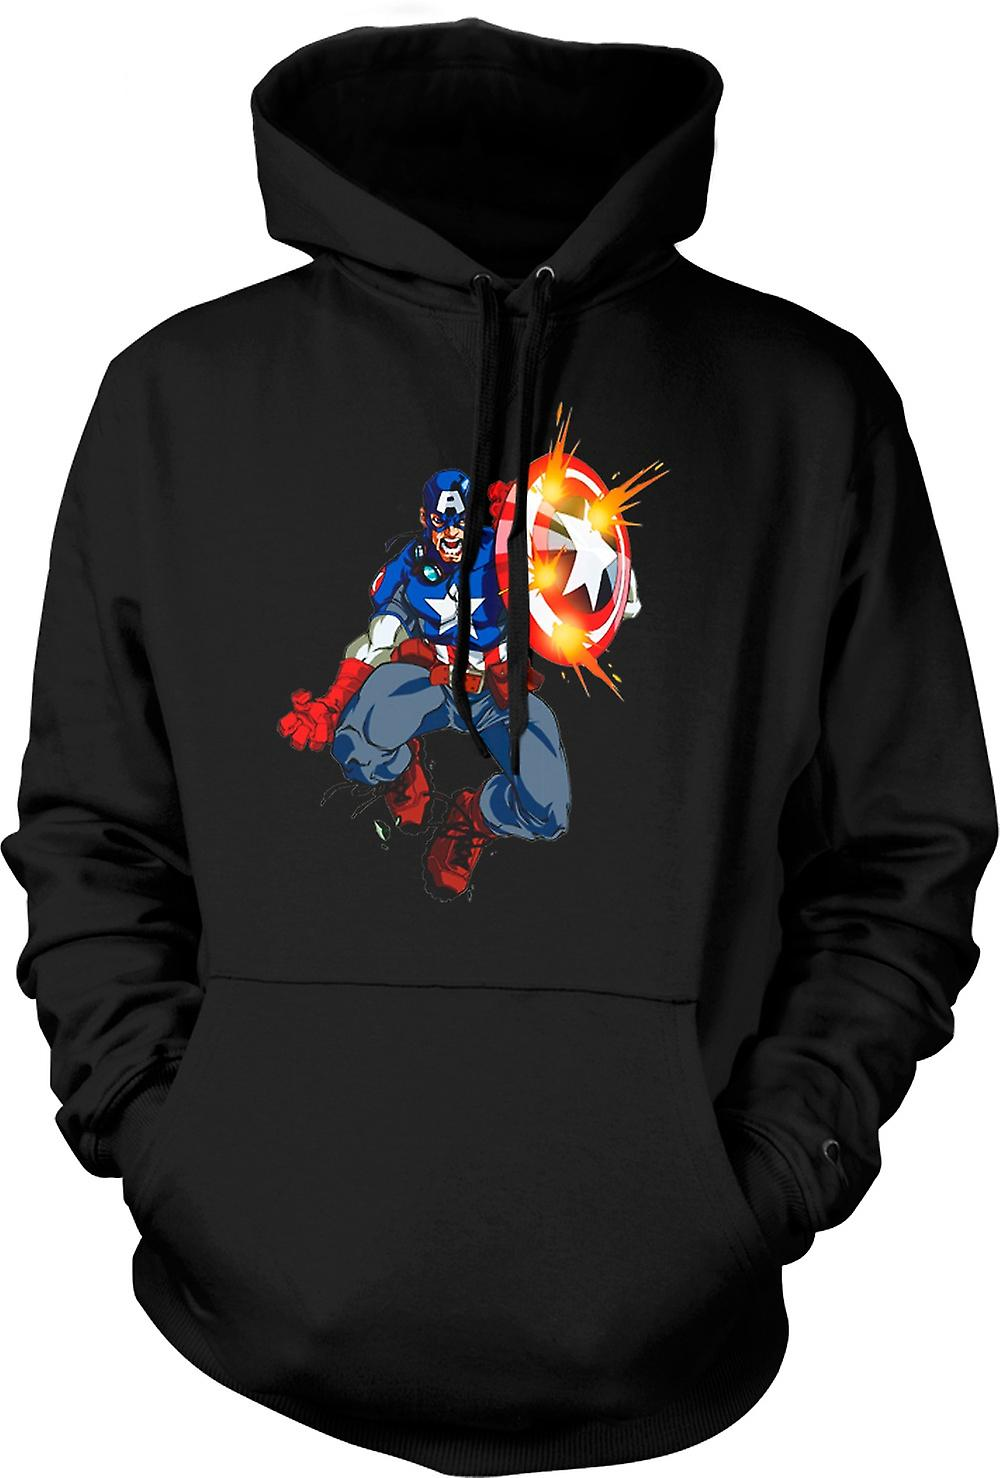 Kids Hoodie - Captain America - Comic Hero